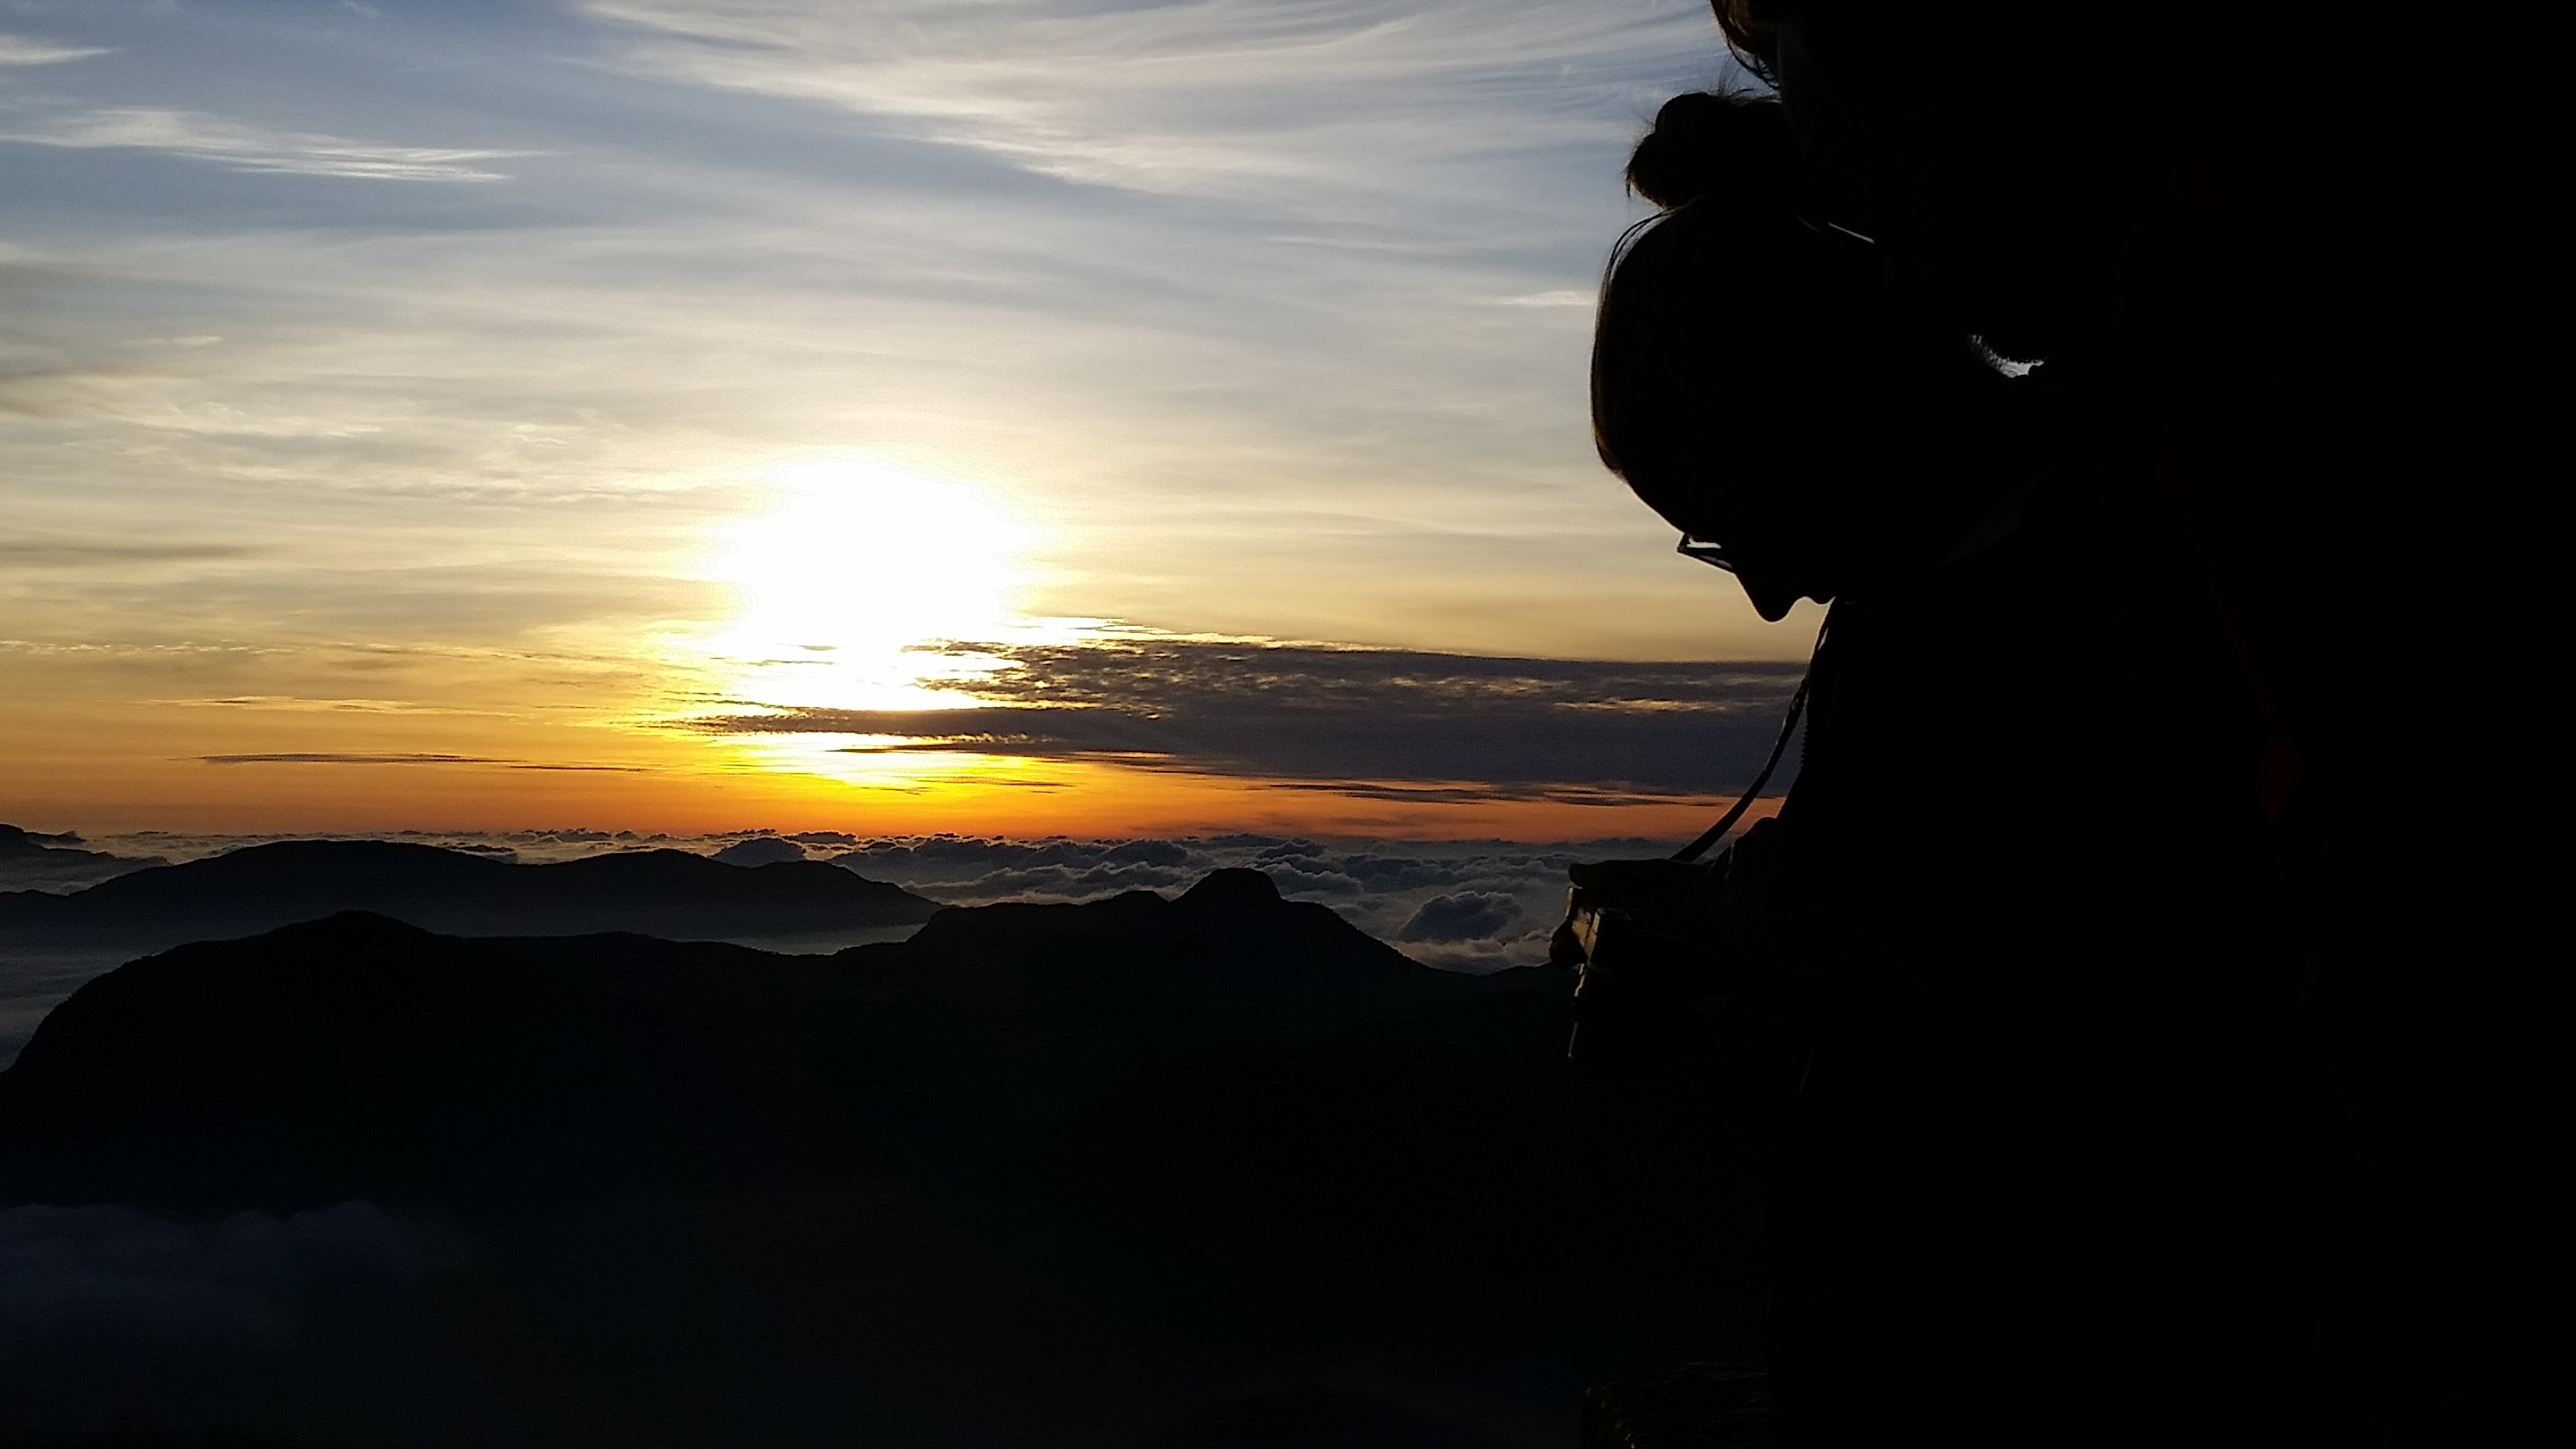 Sunrise Adams Peak